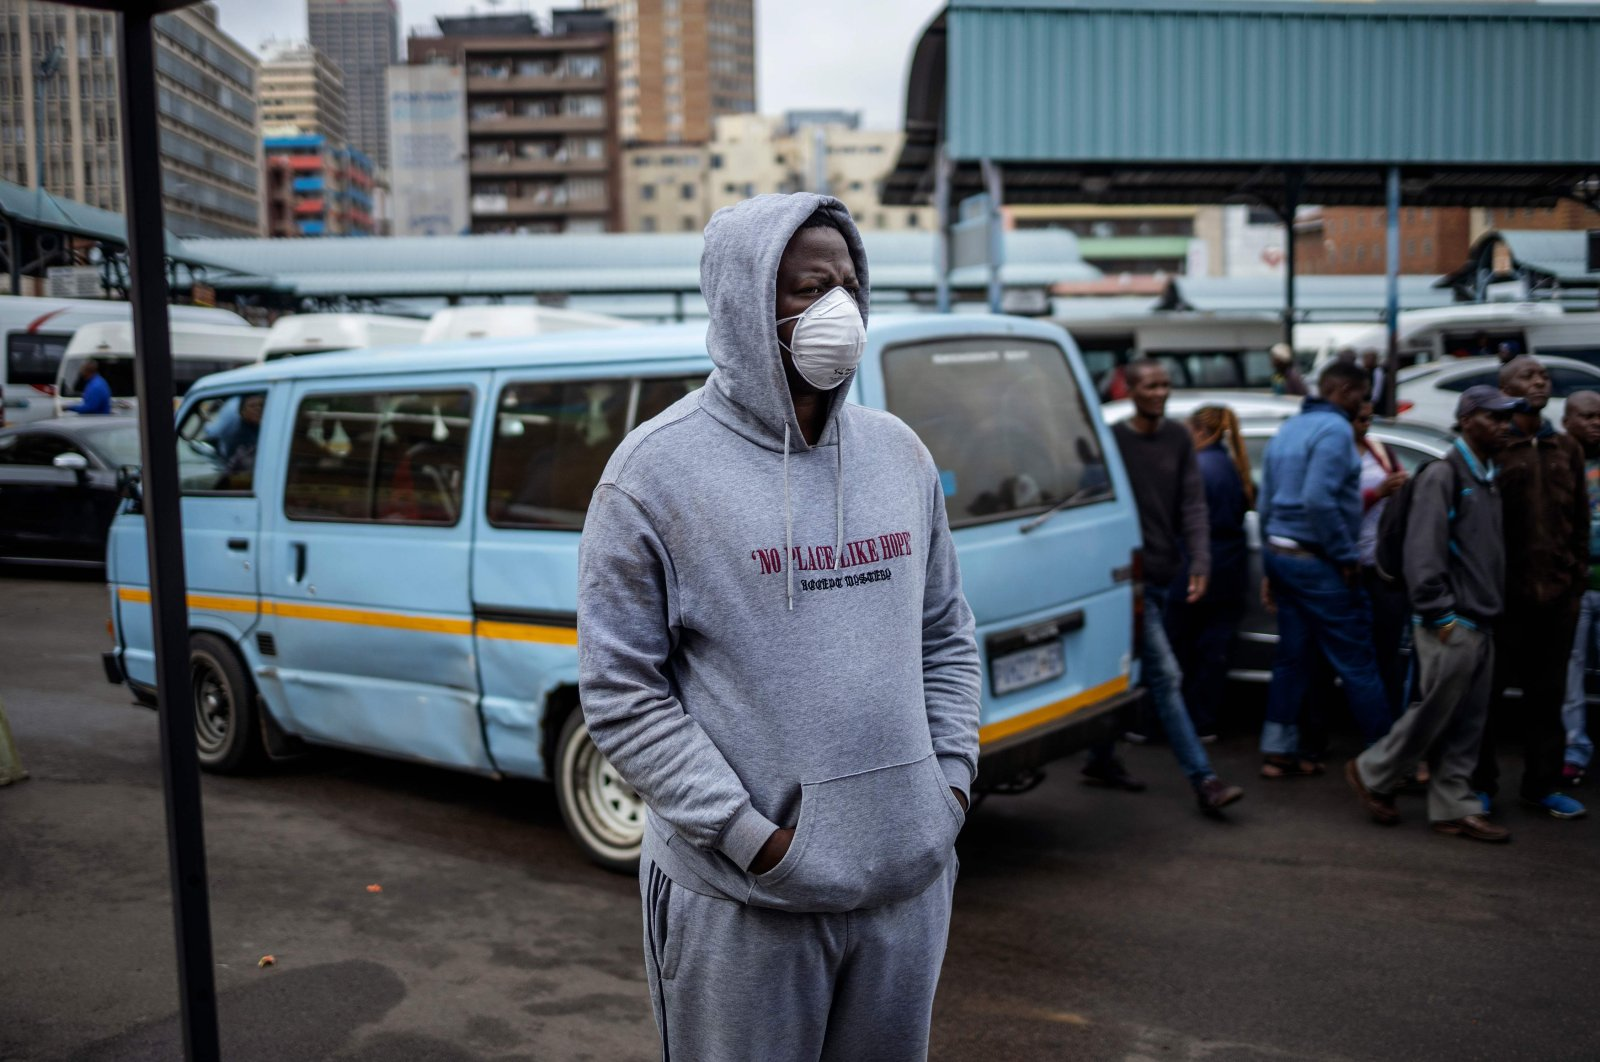 A South African wears a face mask as a preventive measure at the Wanderers taxi rank, Johannesburg CBD, March 18, 2020. (AFP Photo)